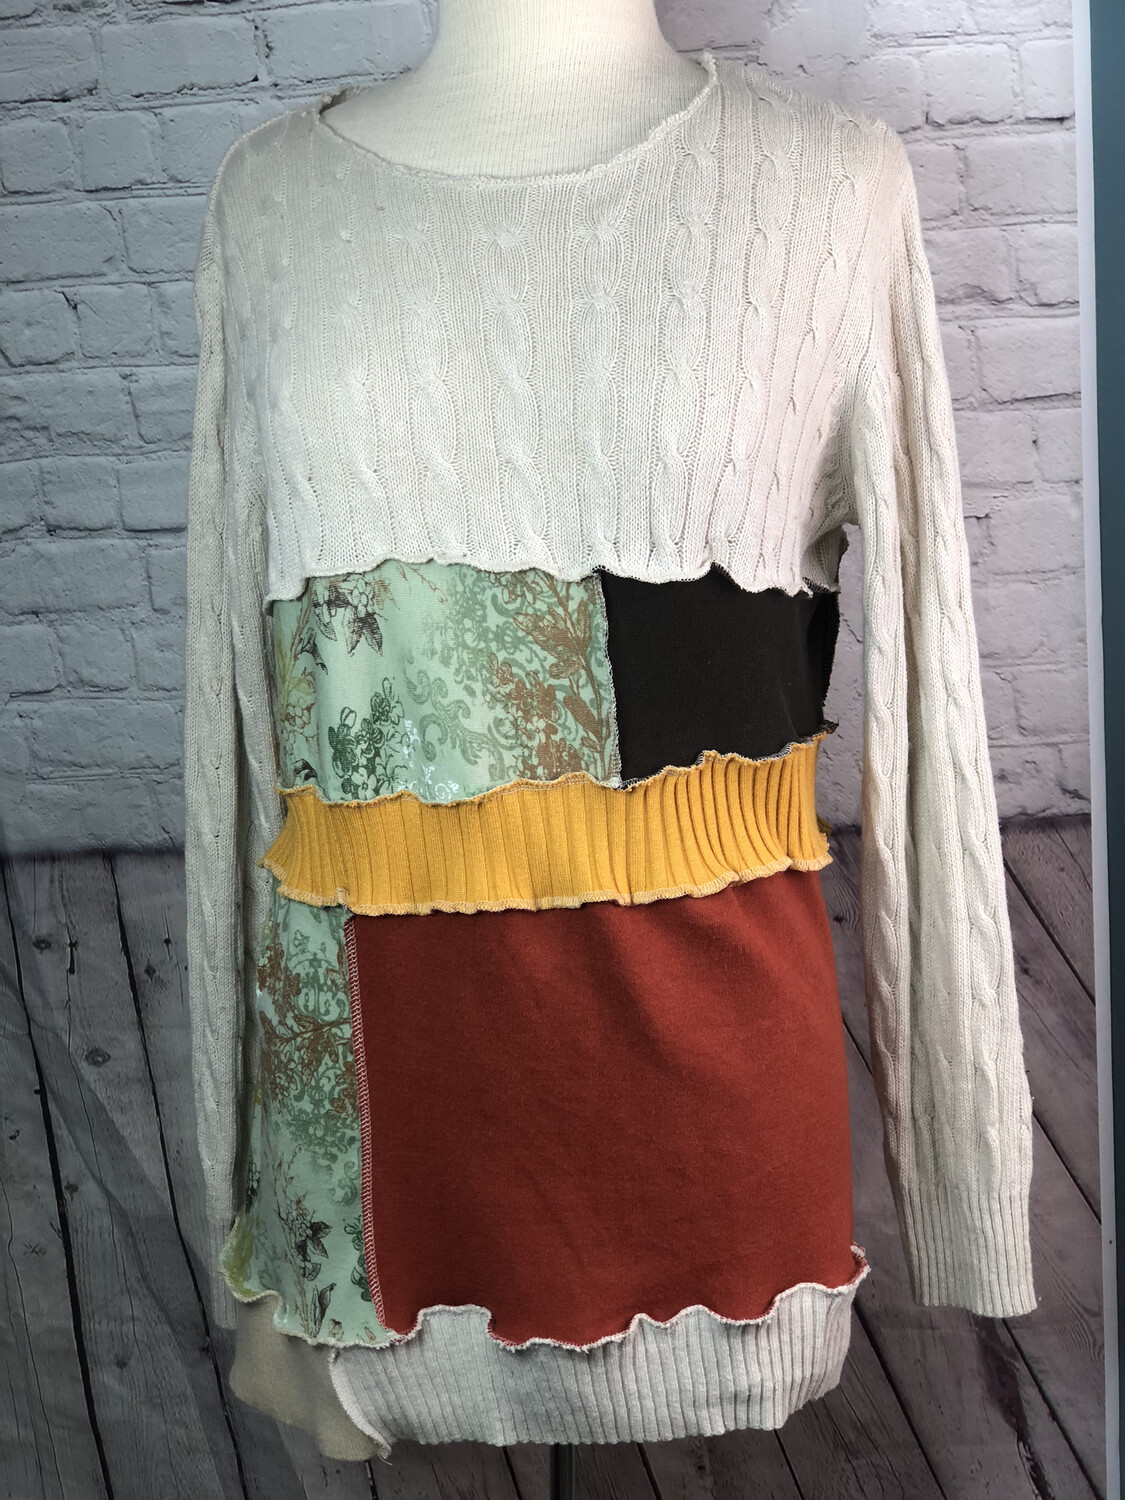 S Threads Upcycled Sweater Patchwork Colorful Recreated Beige Knit Pieced Overlock Outside Seams OOAK size L